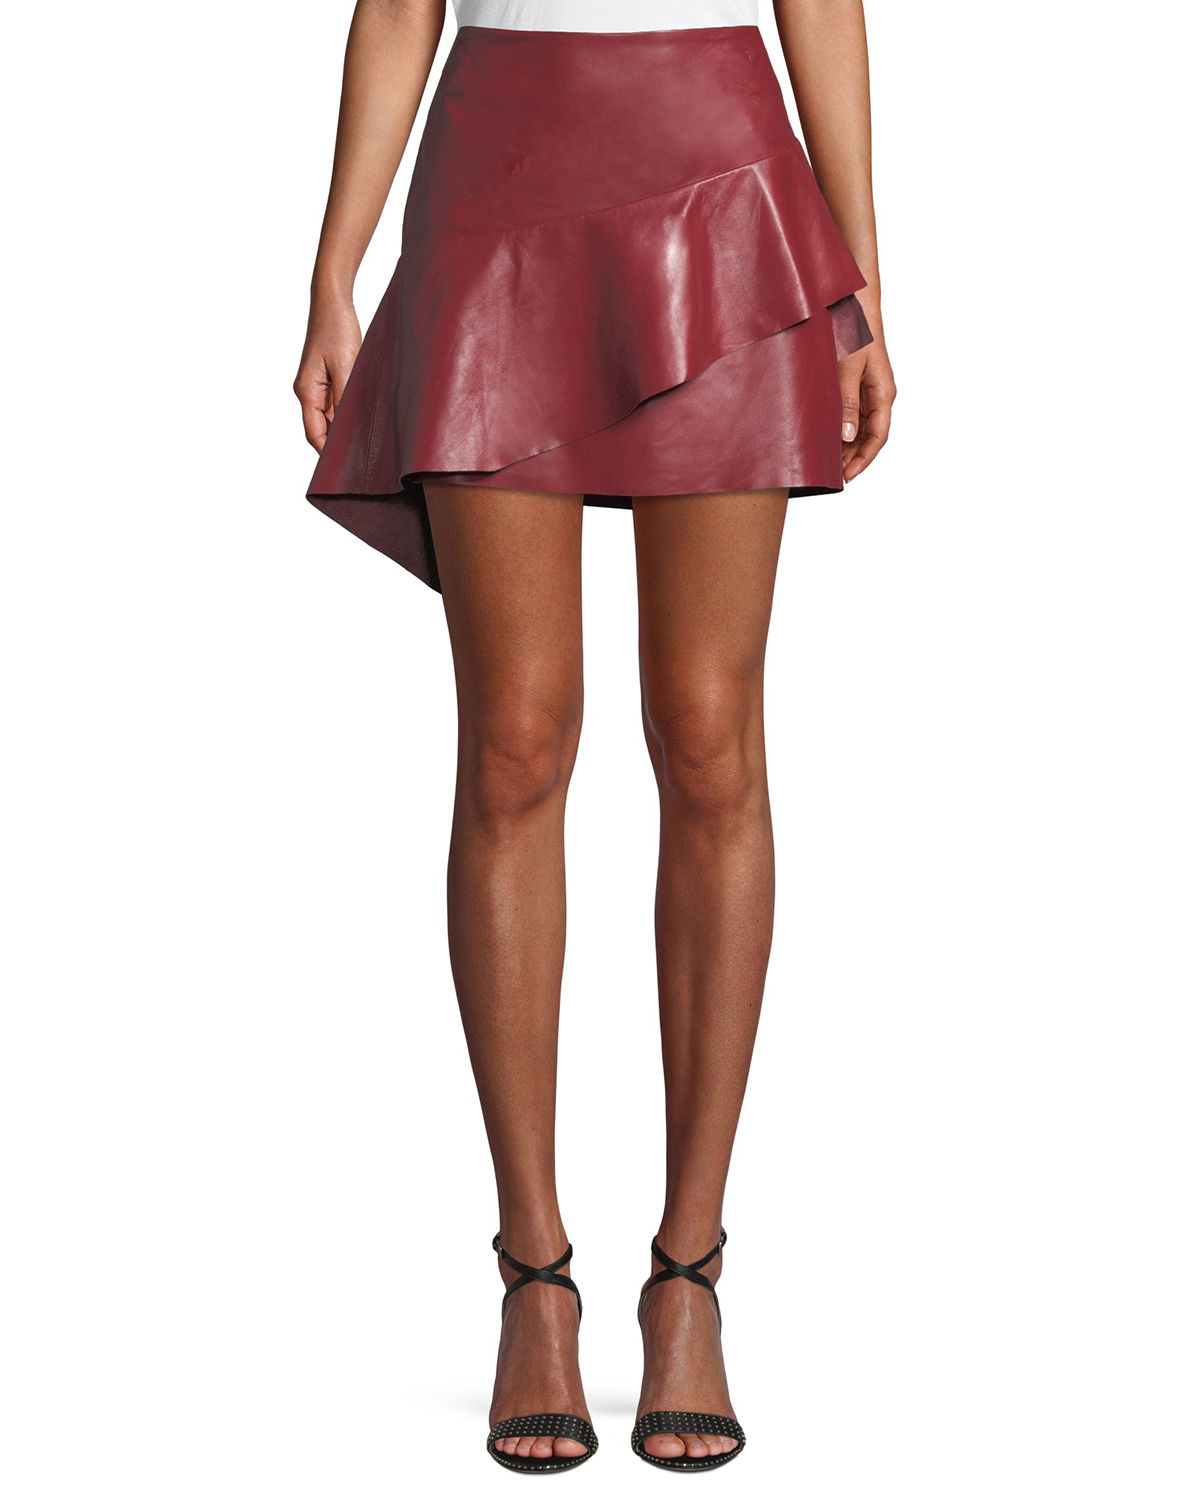 Botan Draped Ruffle Leather Mini Skirt